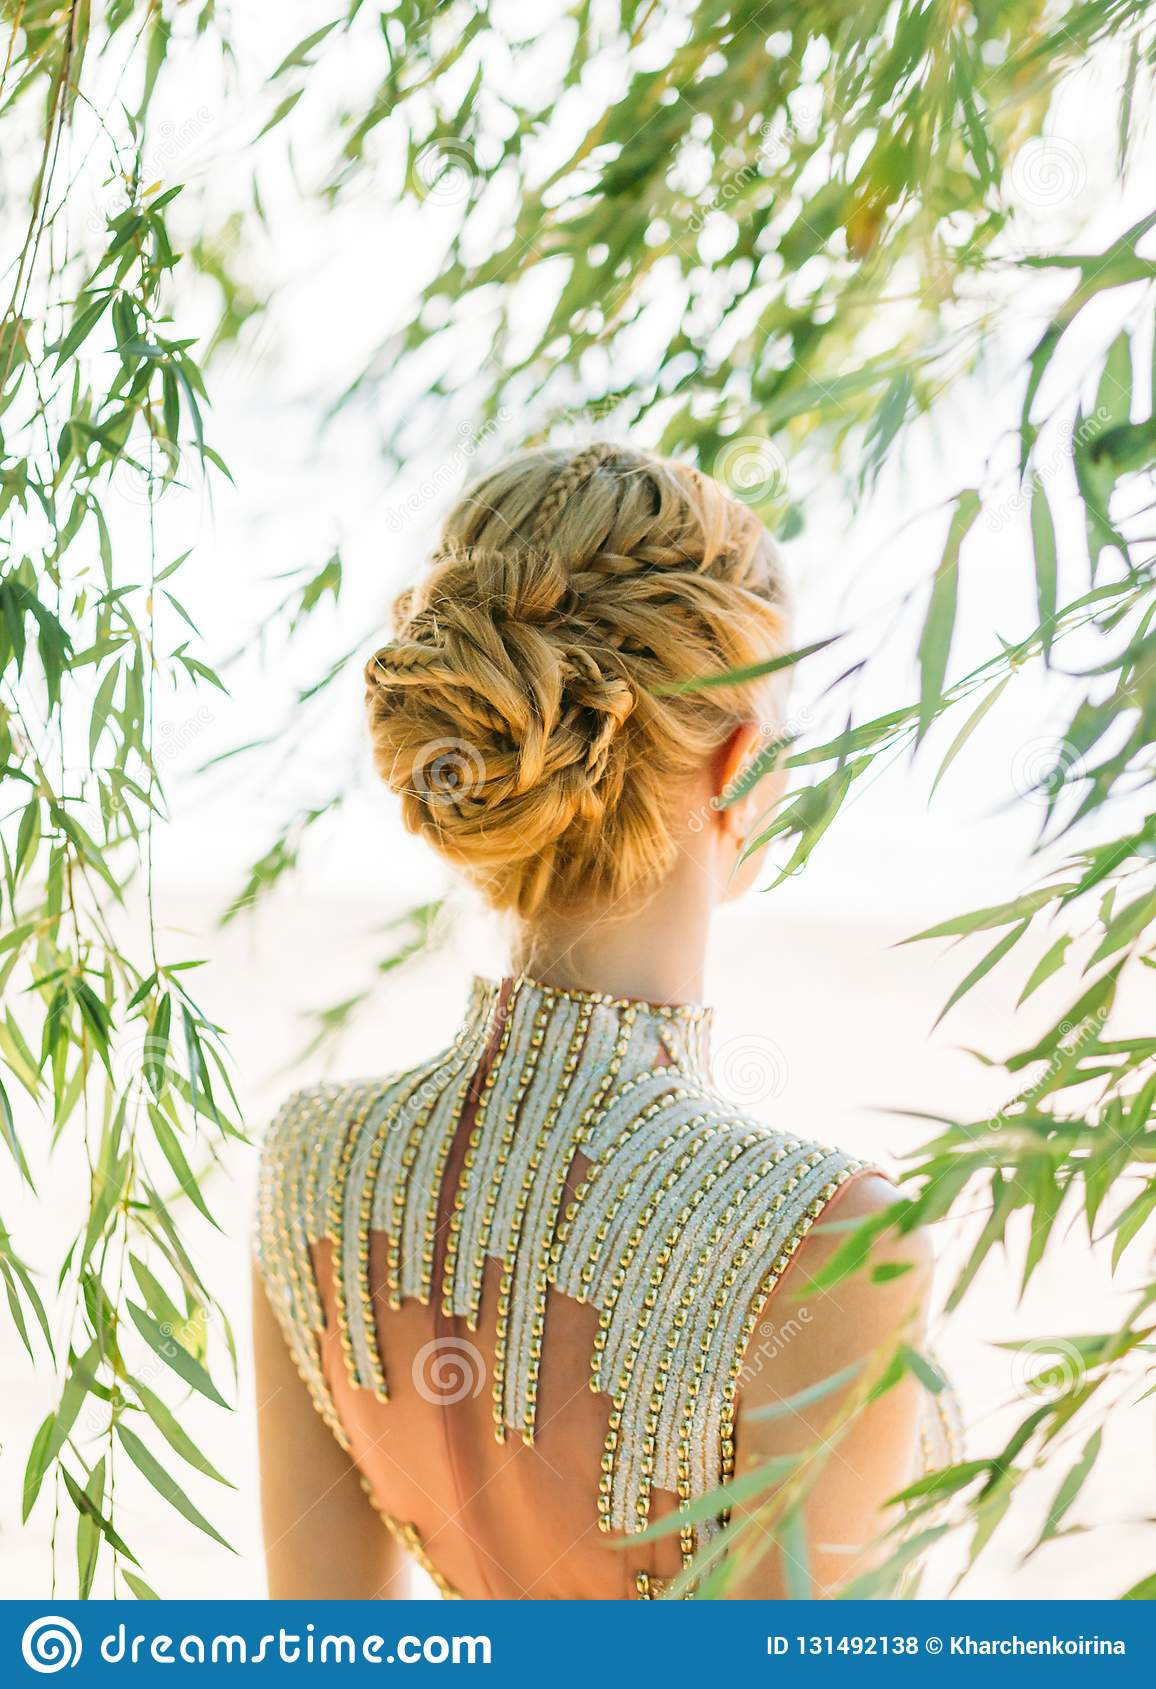 Attractive Woman With Straight Blond Blond Hair Braided In A Soft Hairstyle Of Braids For A Princess Or Elf Neat Stock Photo Image Of Attractive Fairy 131492138